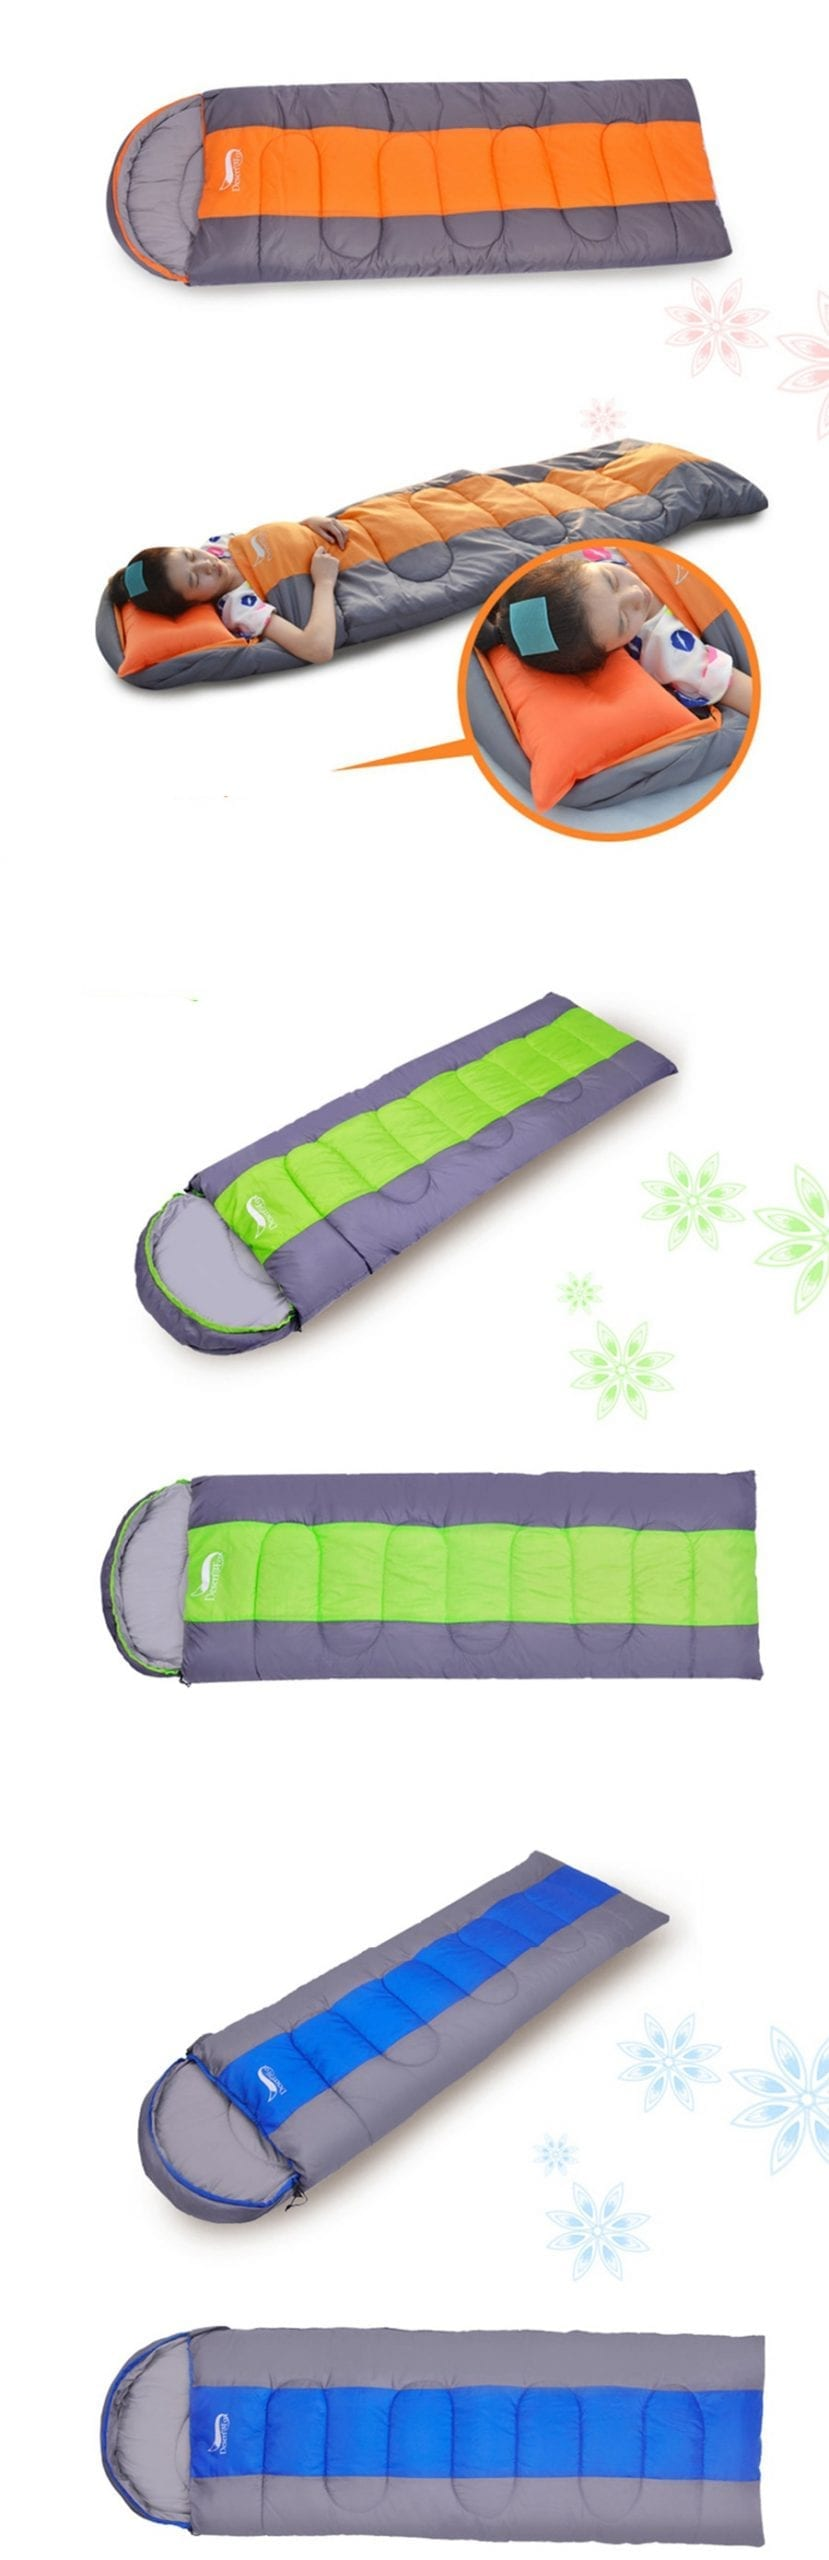 Travelling Camping Sleeping Bag